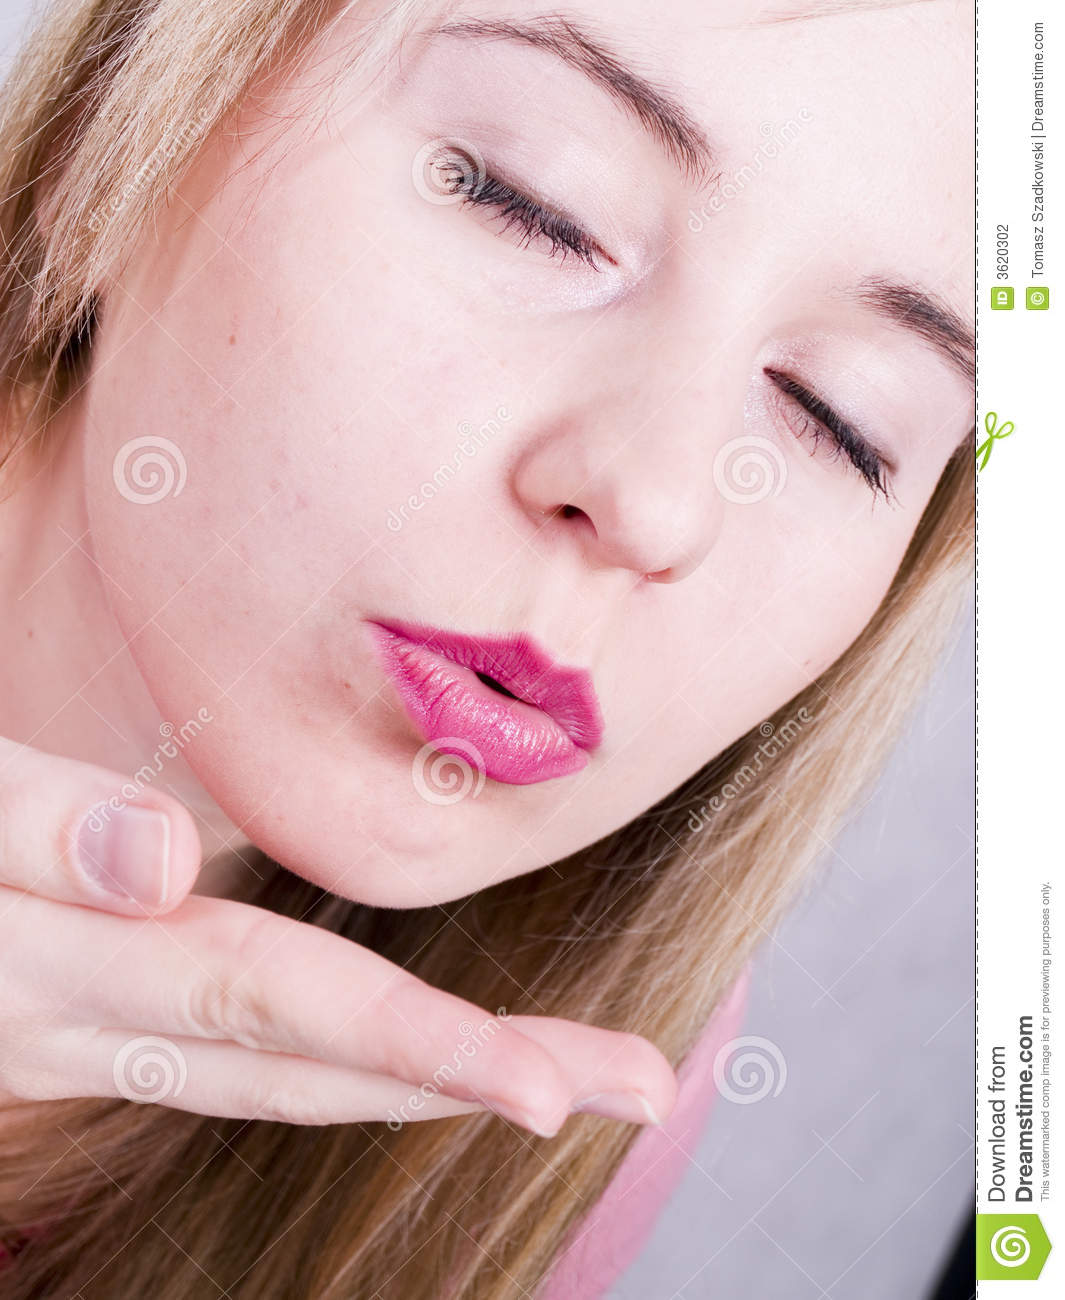 Woman Blowing A Kiss Stock Photography - Image: 3620302